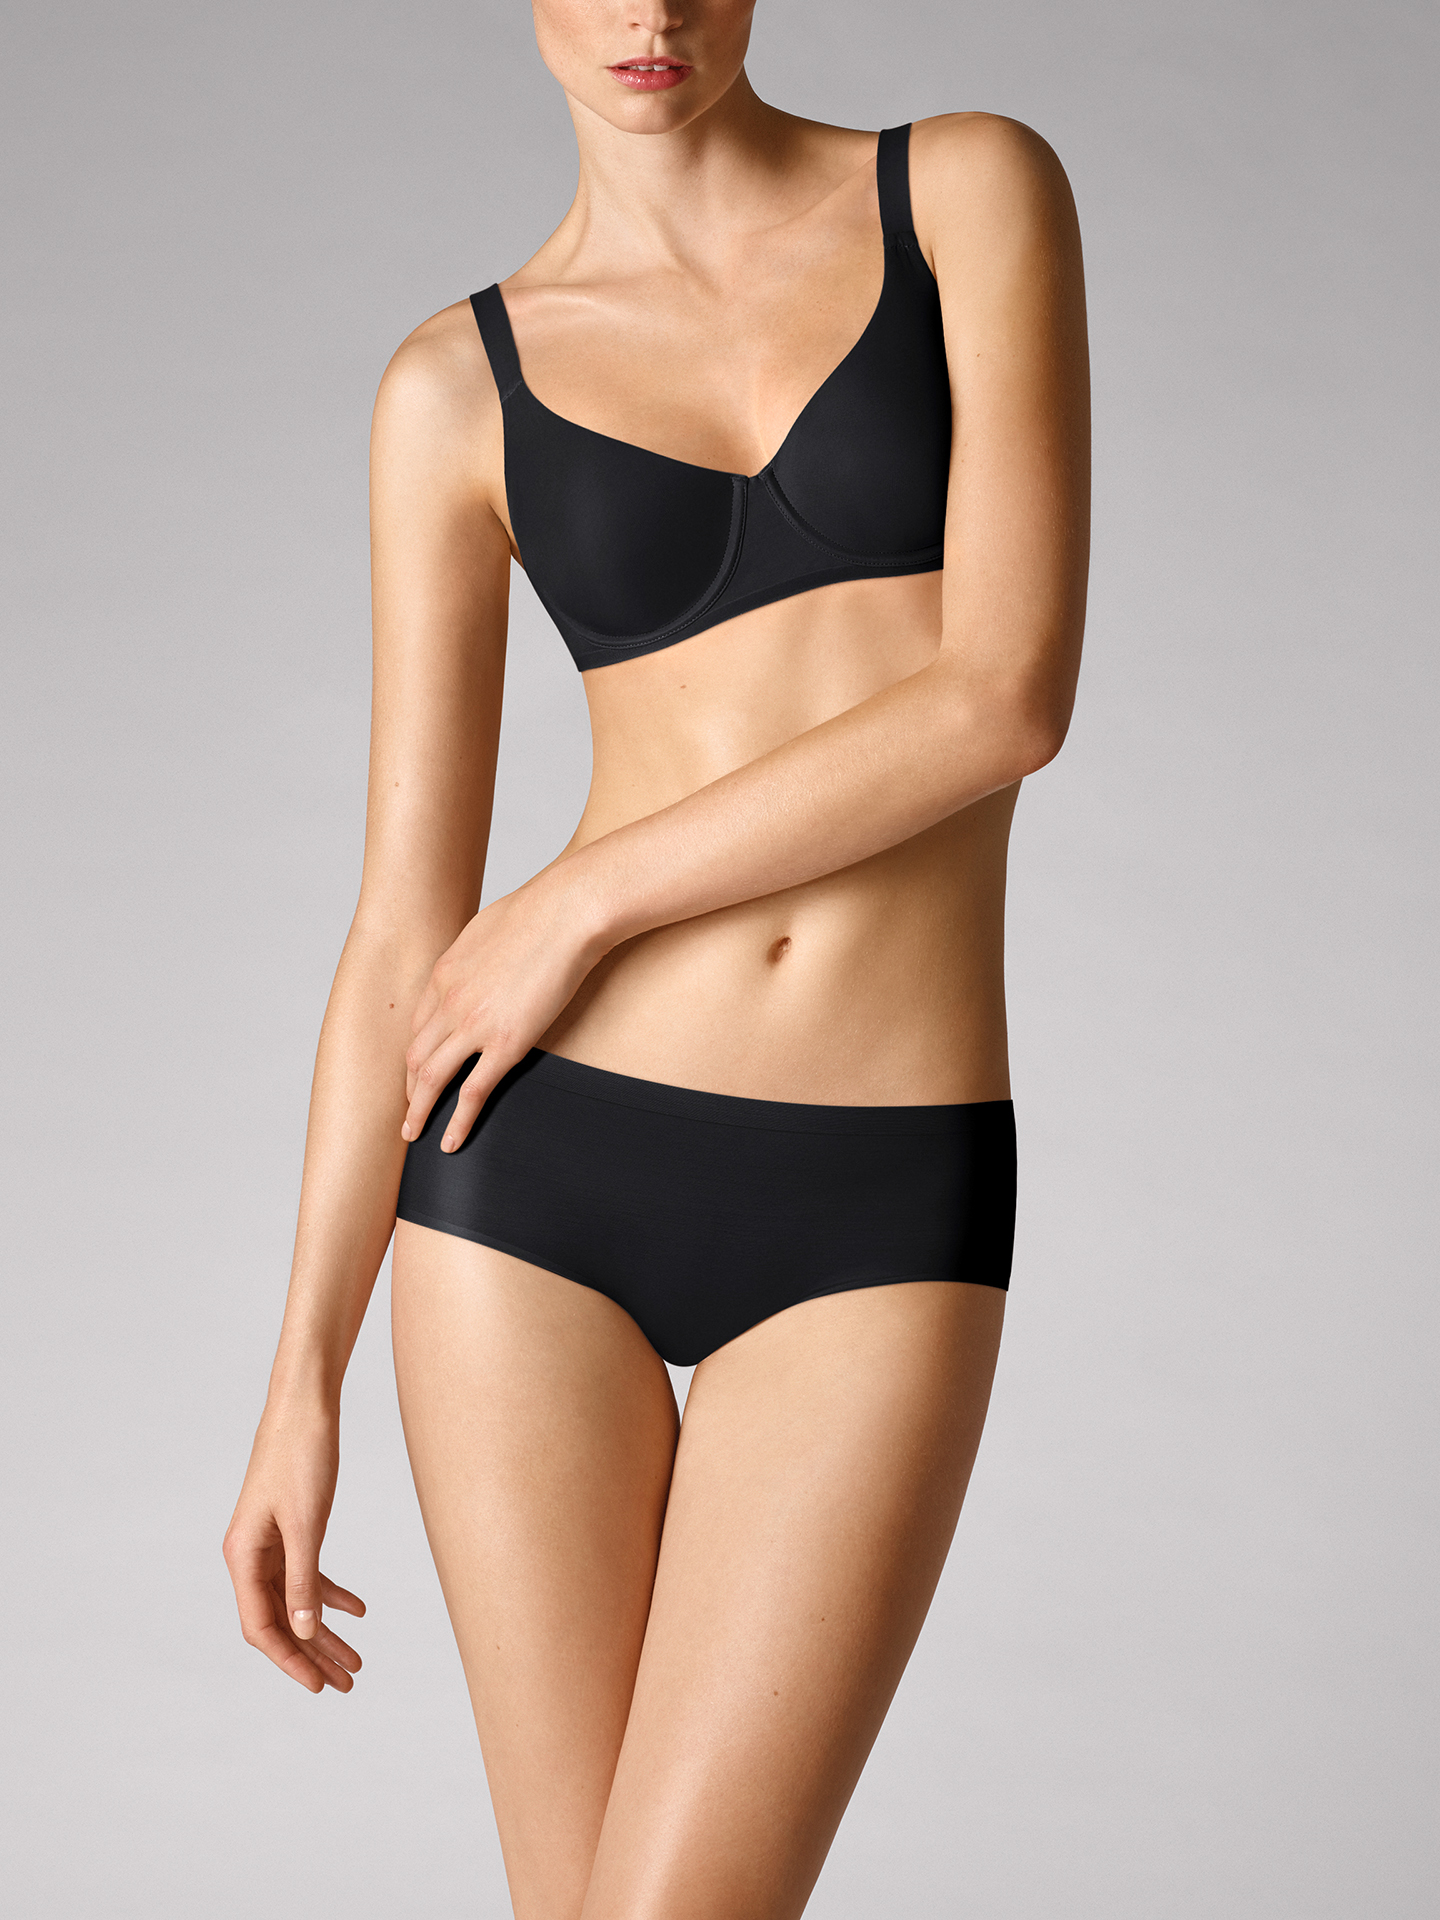 prezzo Wolford Apparel & Accessories > Clothing > Mutandine Sheer Touch Panty 7005 S in offerta